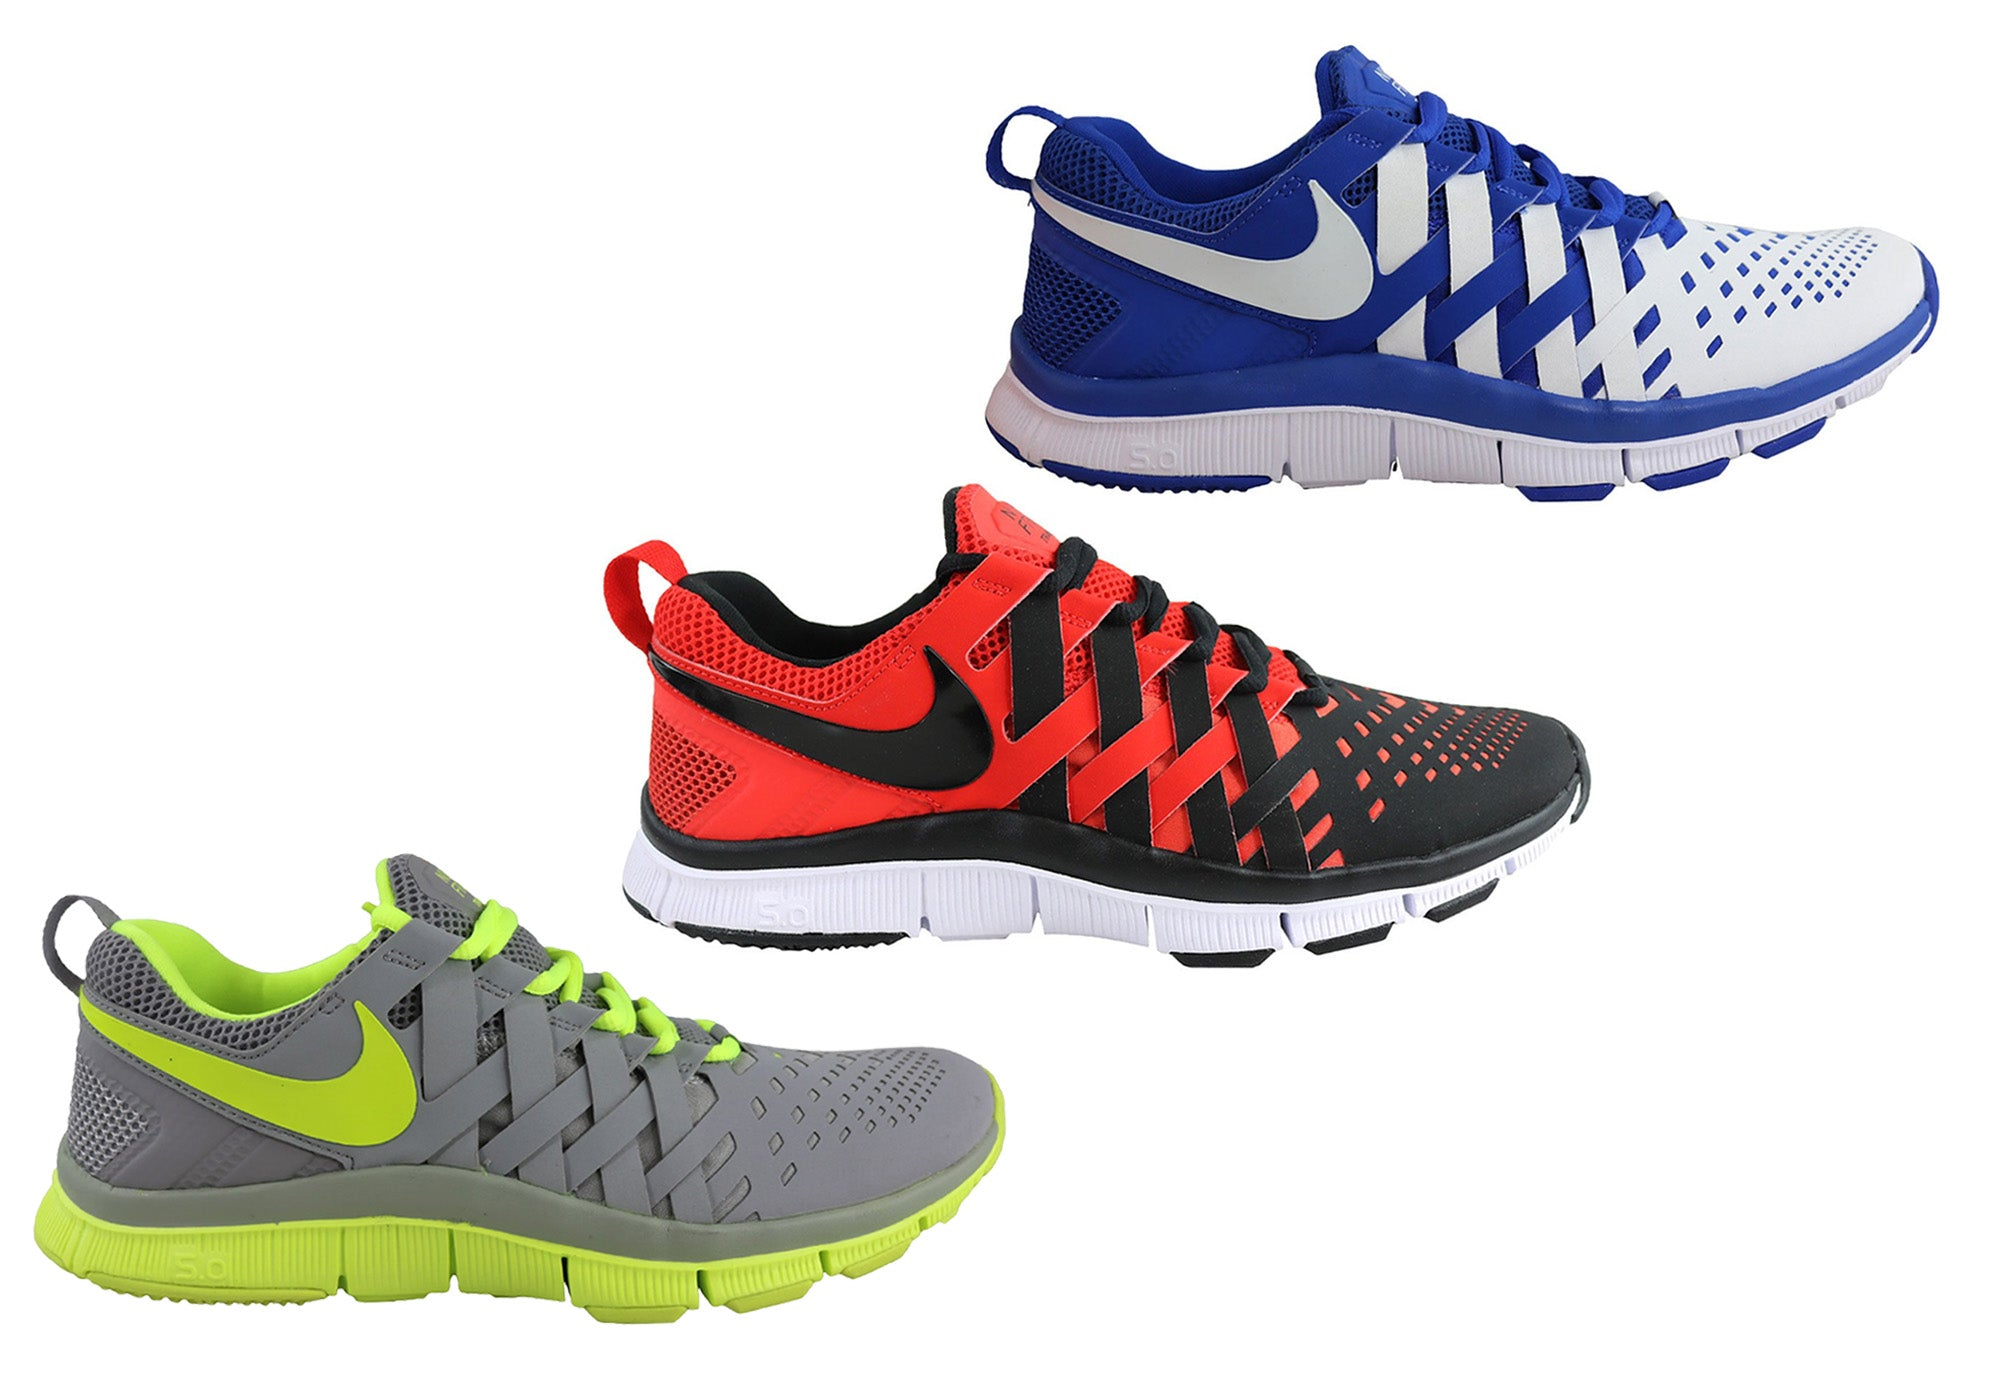 NEW NIKE FREE TRAINER 5.0 MENS RUNNING SPORT SHOES